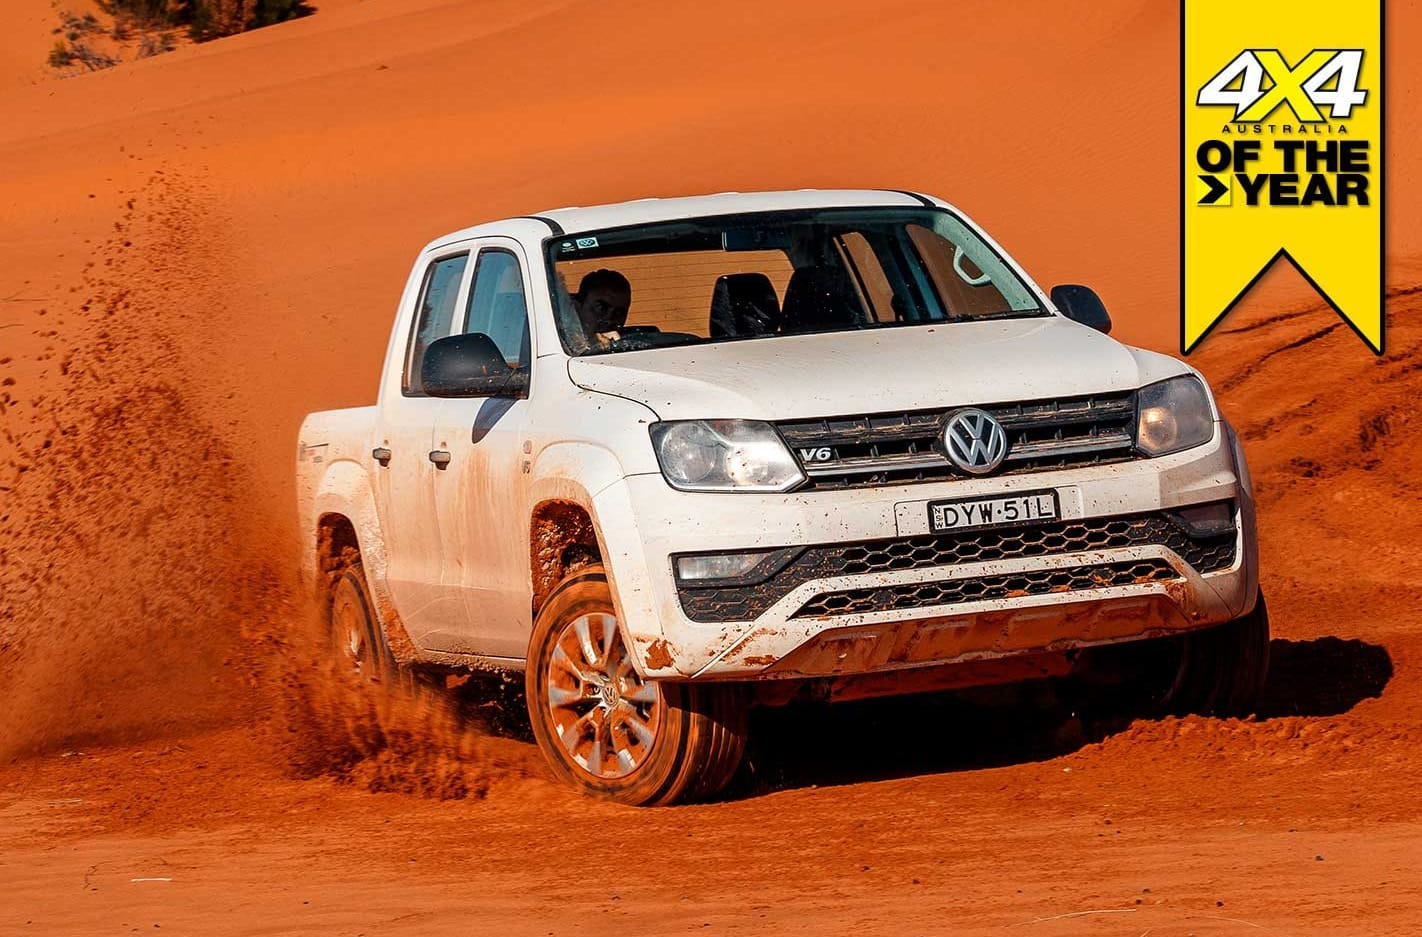 4x4 of the Year 2019 Volkswagen Amarok V6 Core review